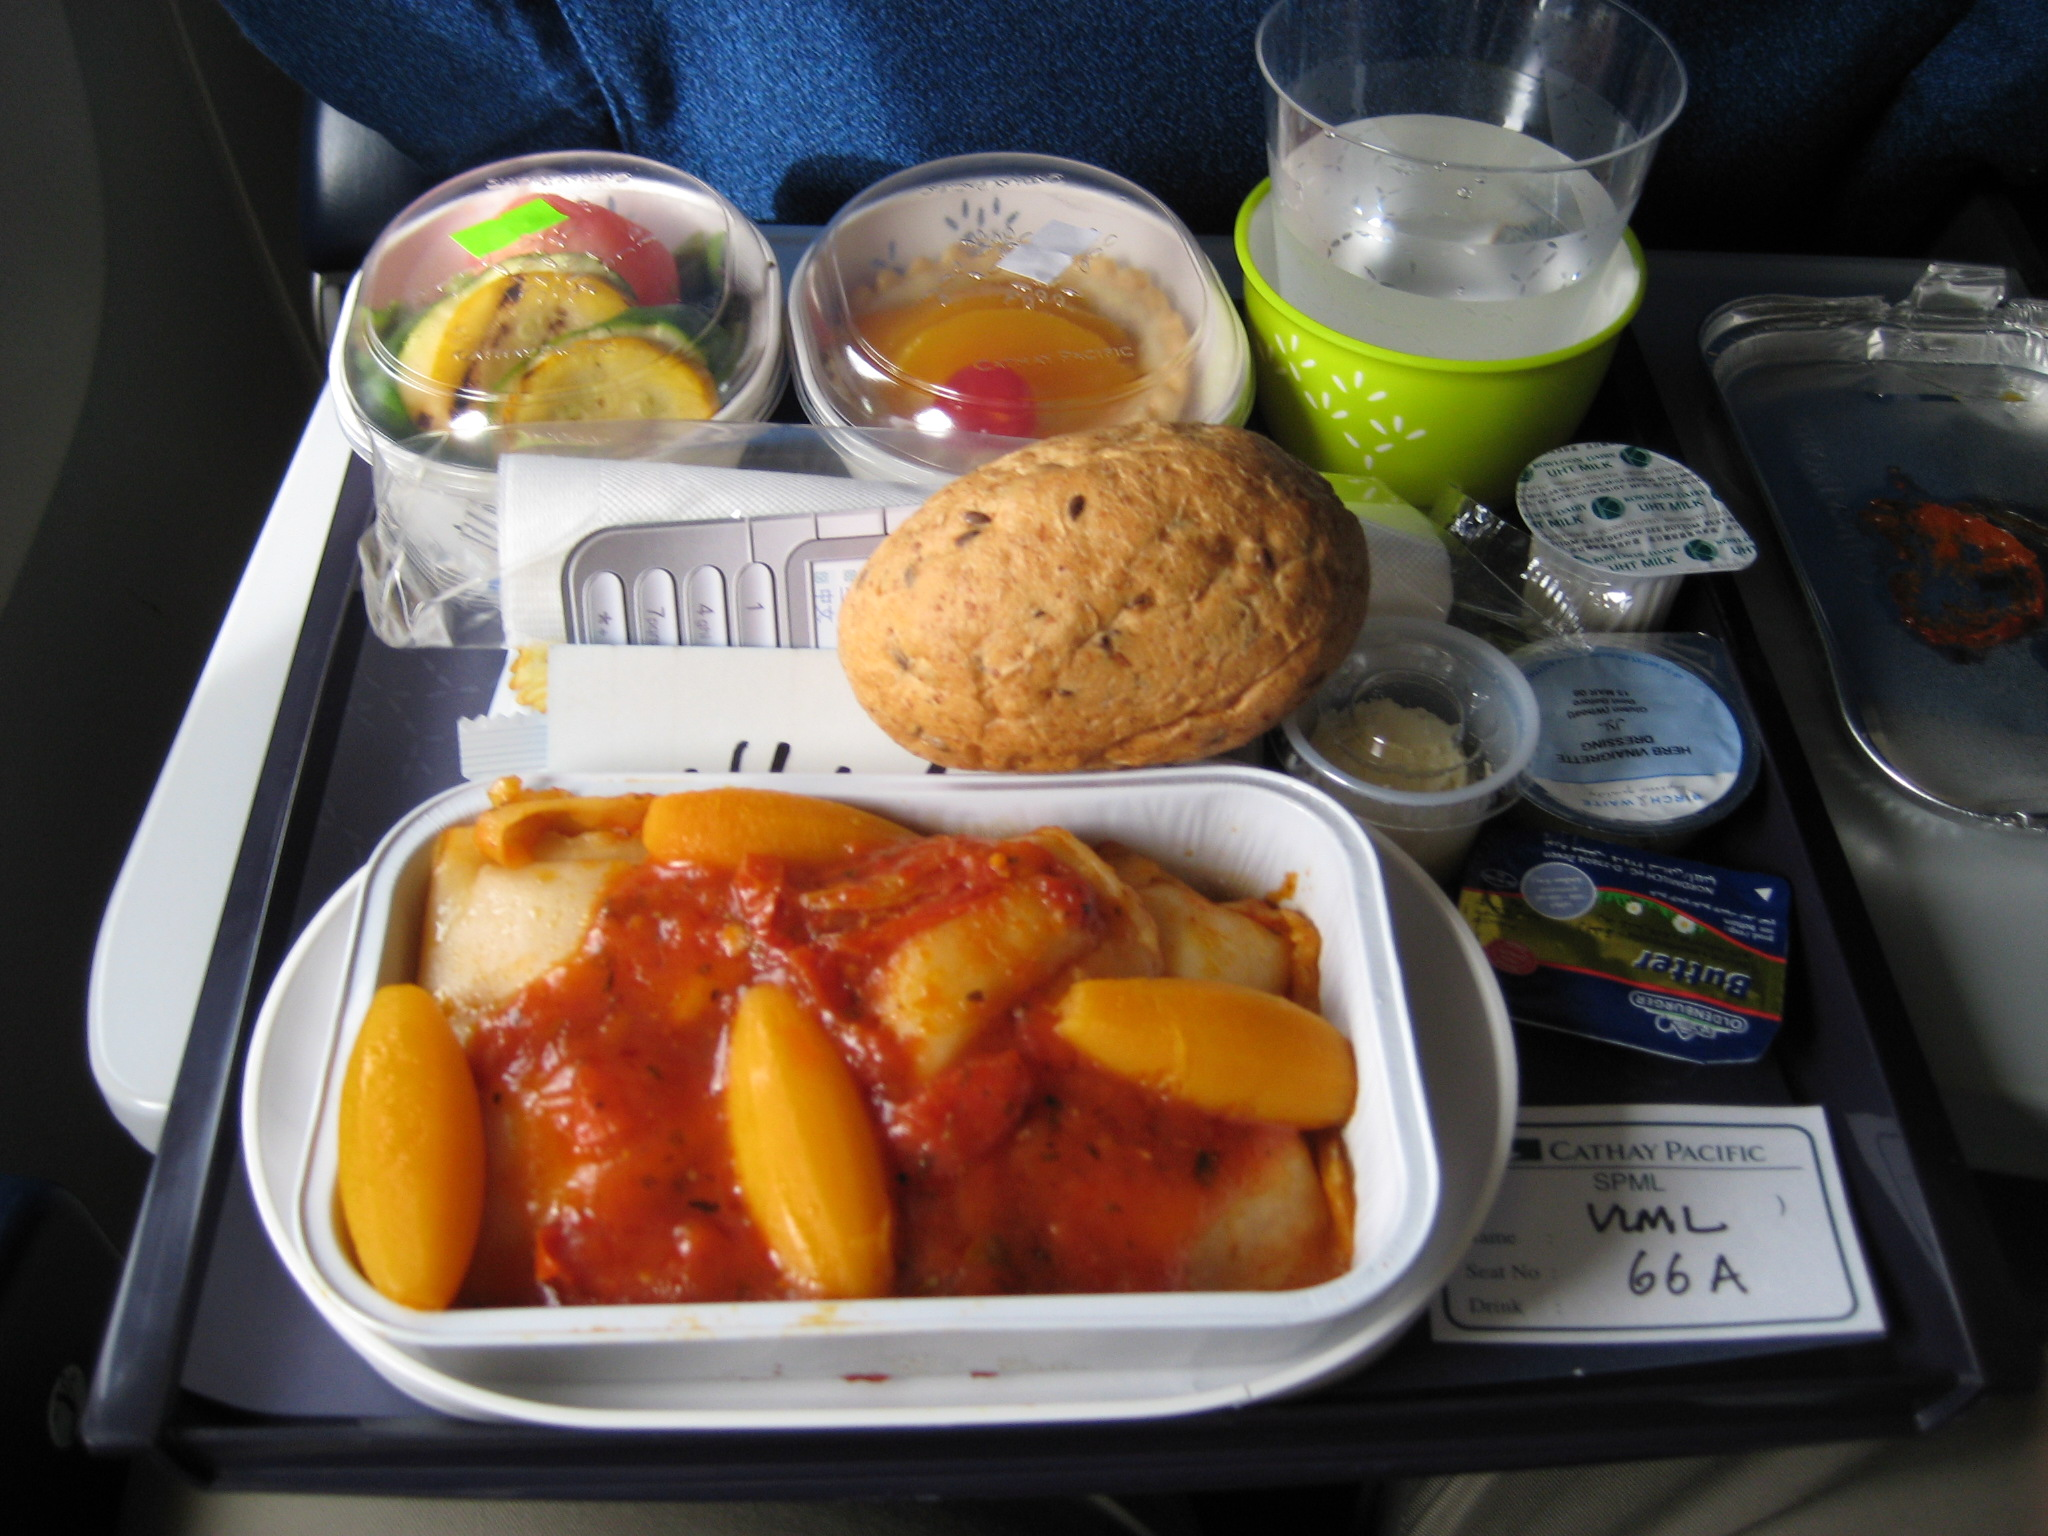 File:Western Vegetarian Airline meal.jpg  Wikimedia Commons